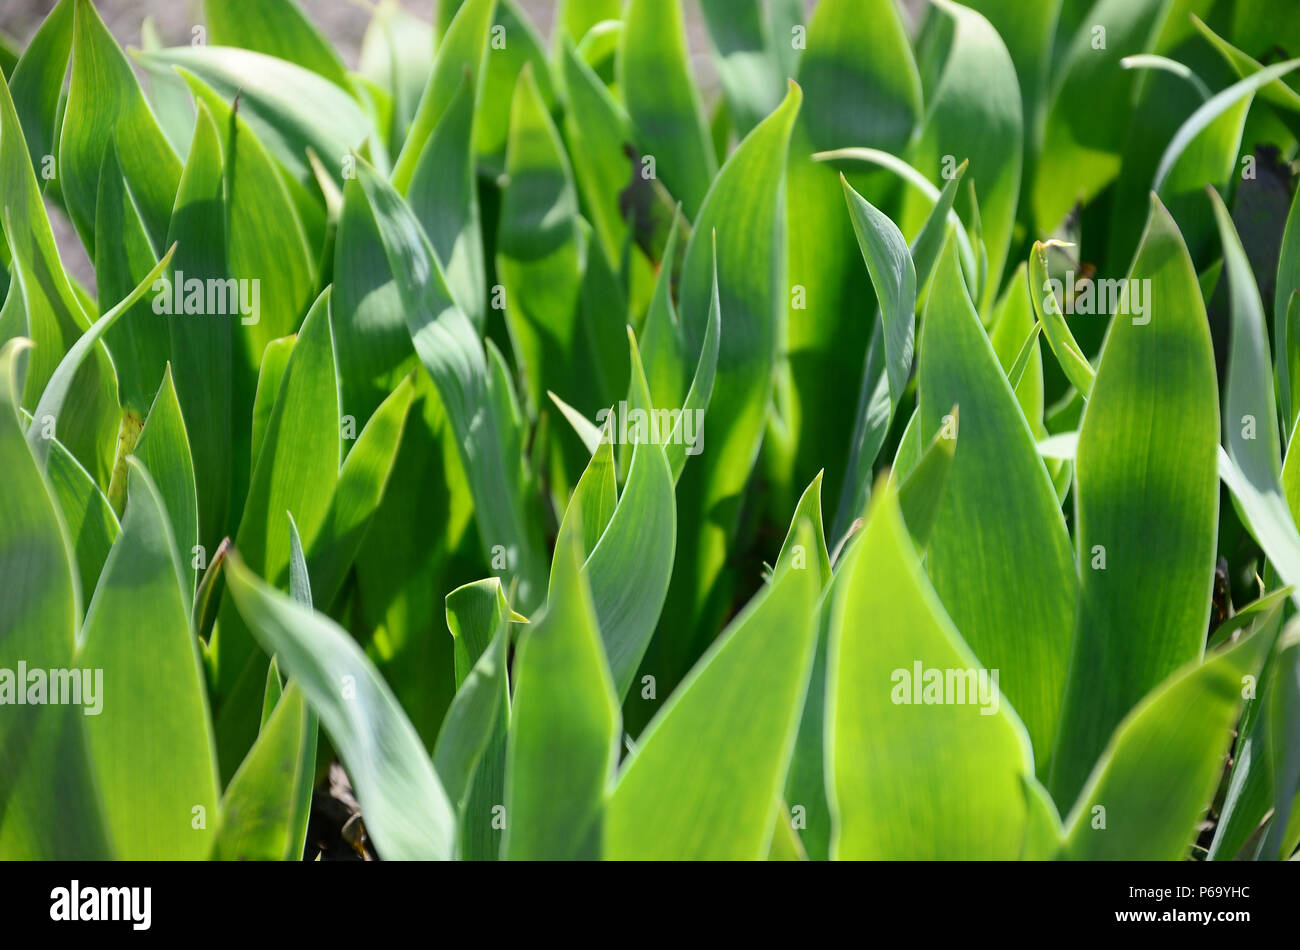 A lot of green stems growing in the garden . - Stock Image